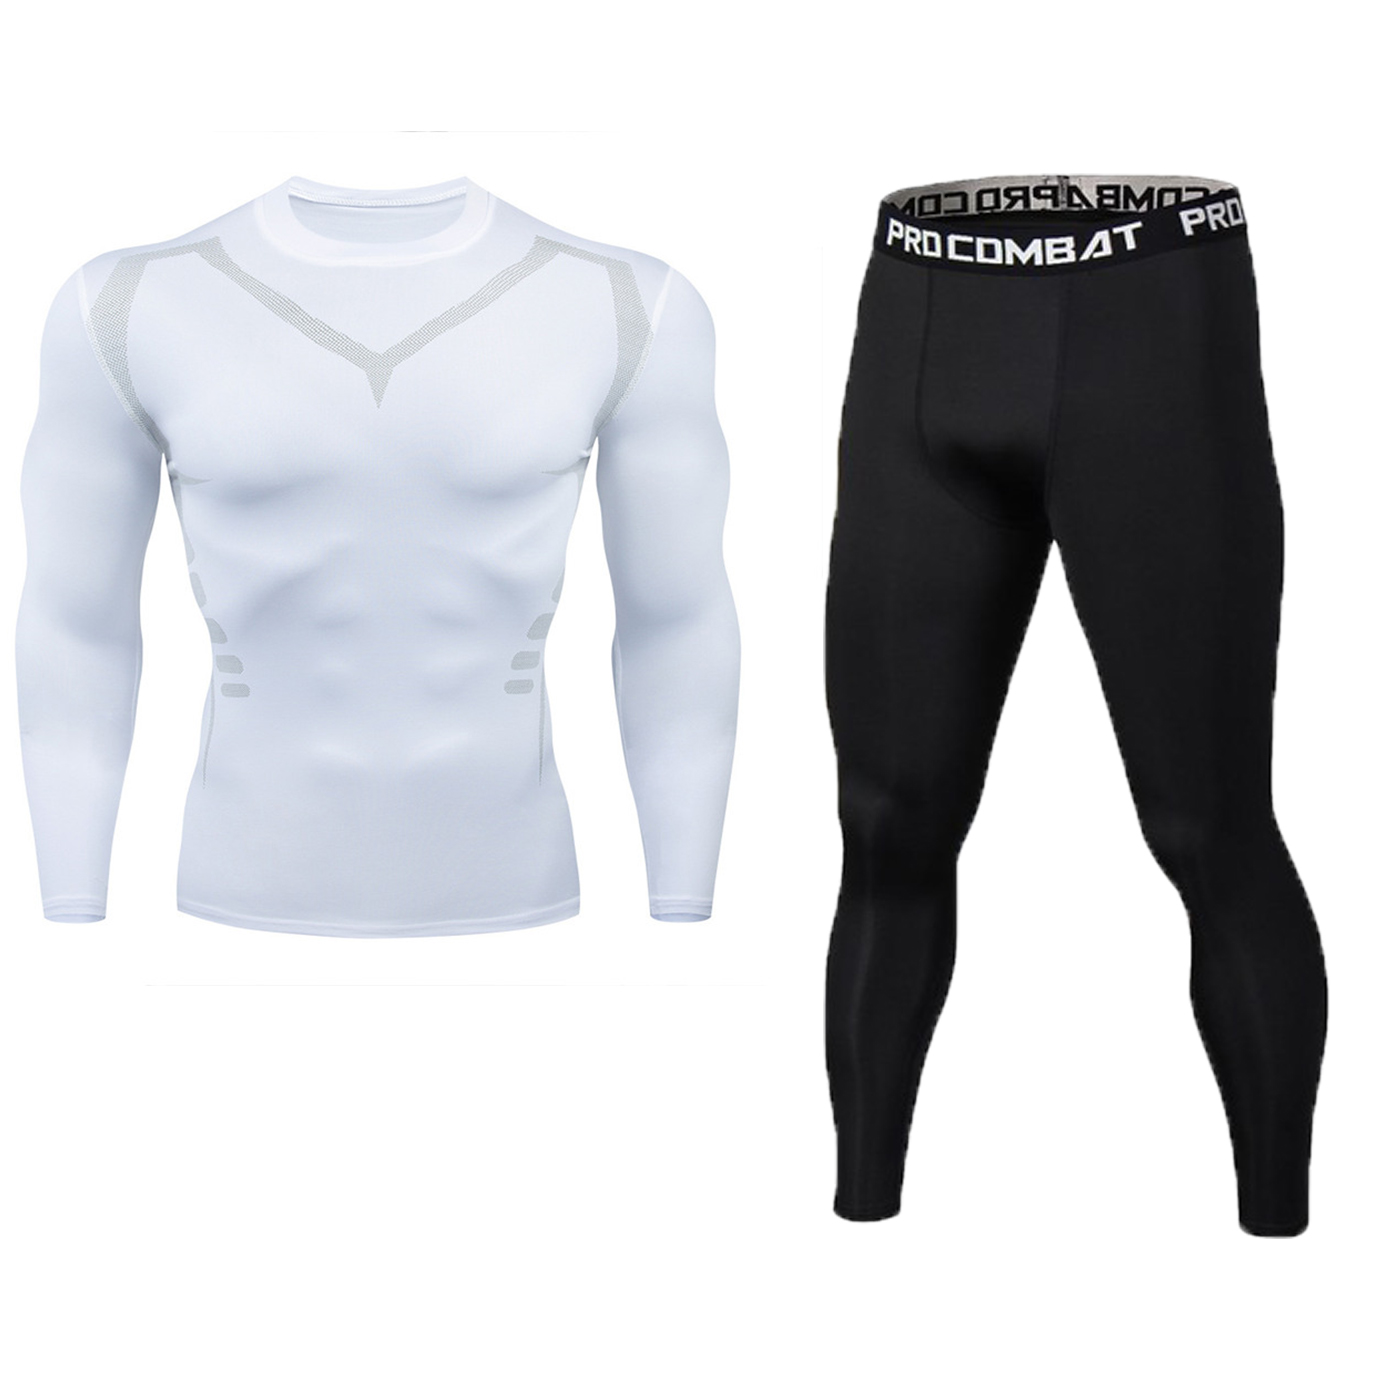 New Fitness Men's Set Pure Black Compression Top + Leggings Underwear Crossfit Long Sleeve + Short Sleeve T-Shirt Apparel Set